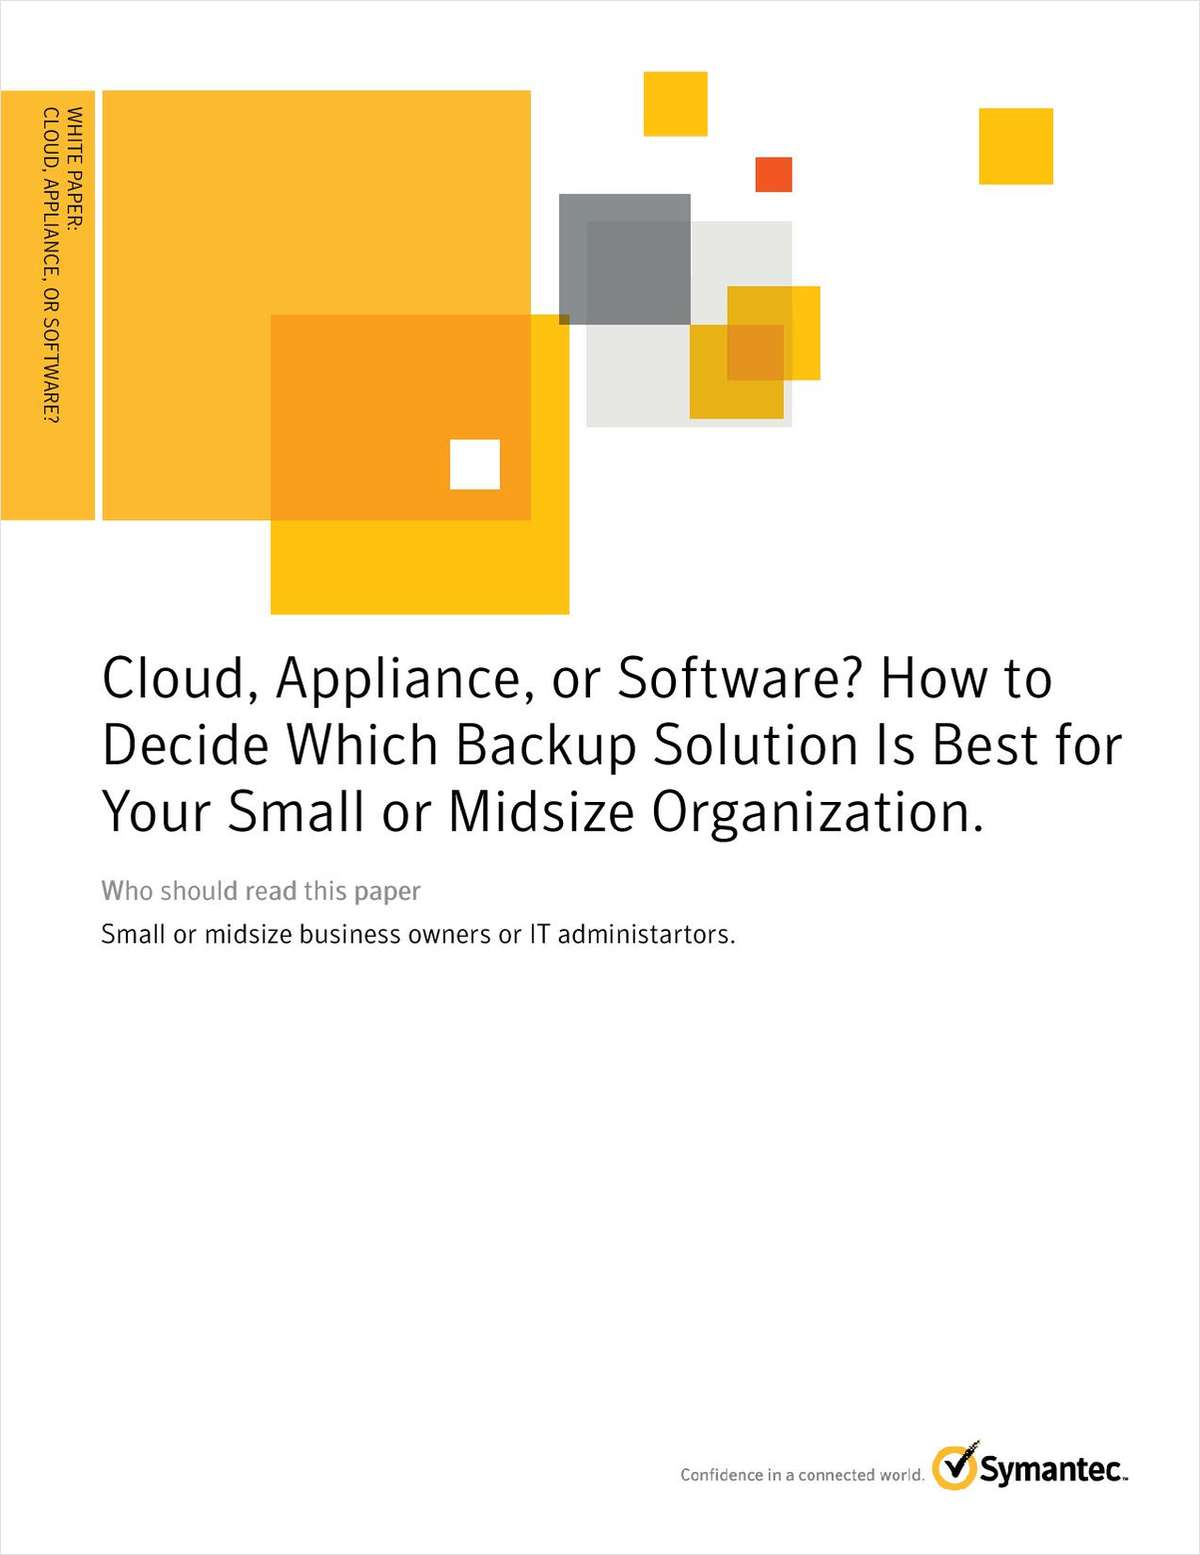 Cloud, Appliance, or Software? How to Decide Which Backup Solution Is Best for Your Small or Midsize Organization